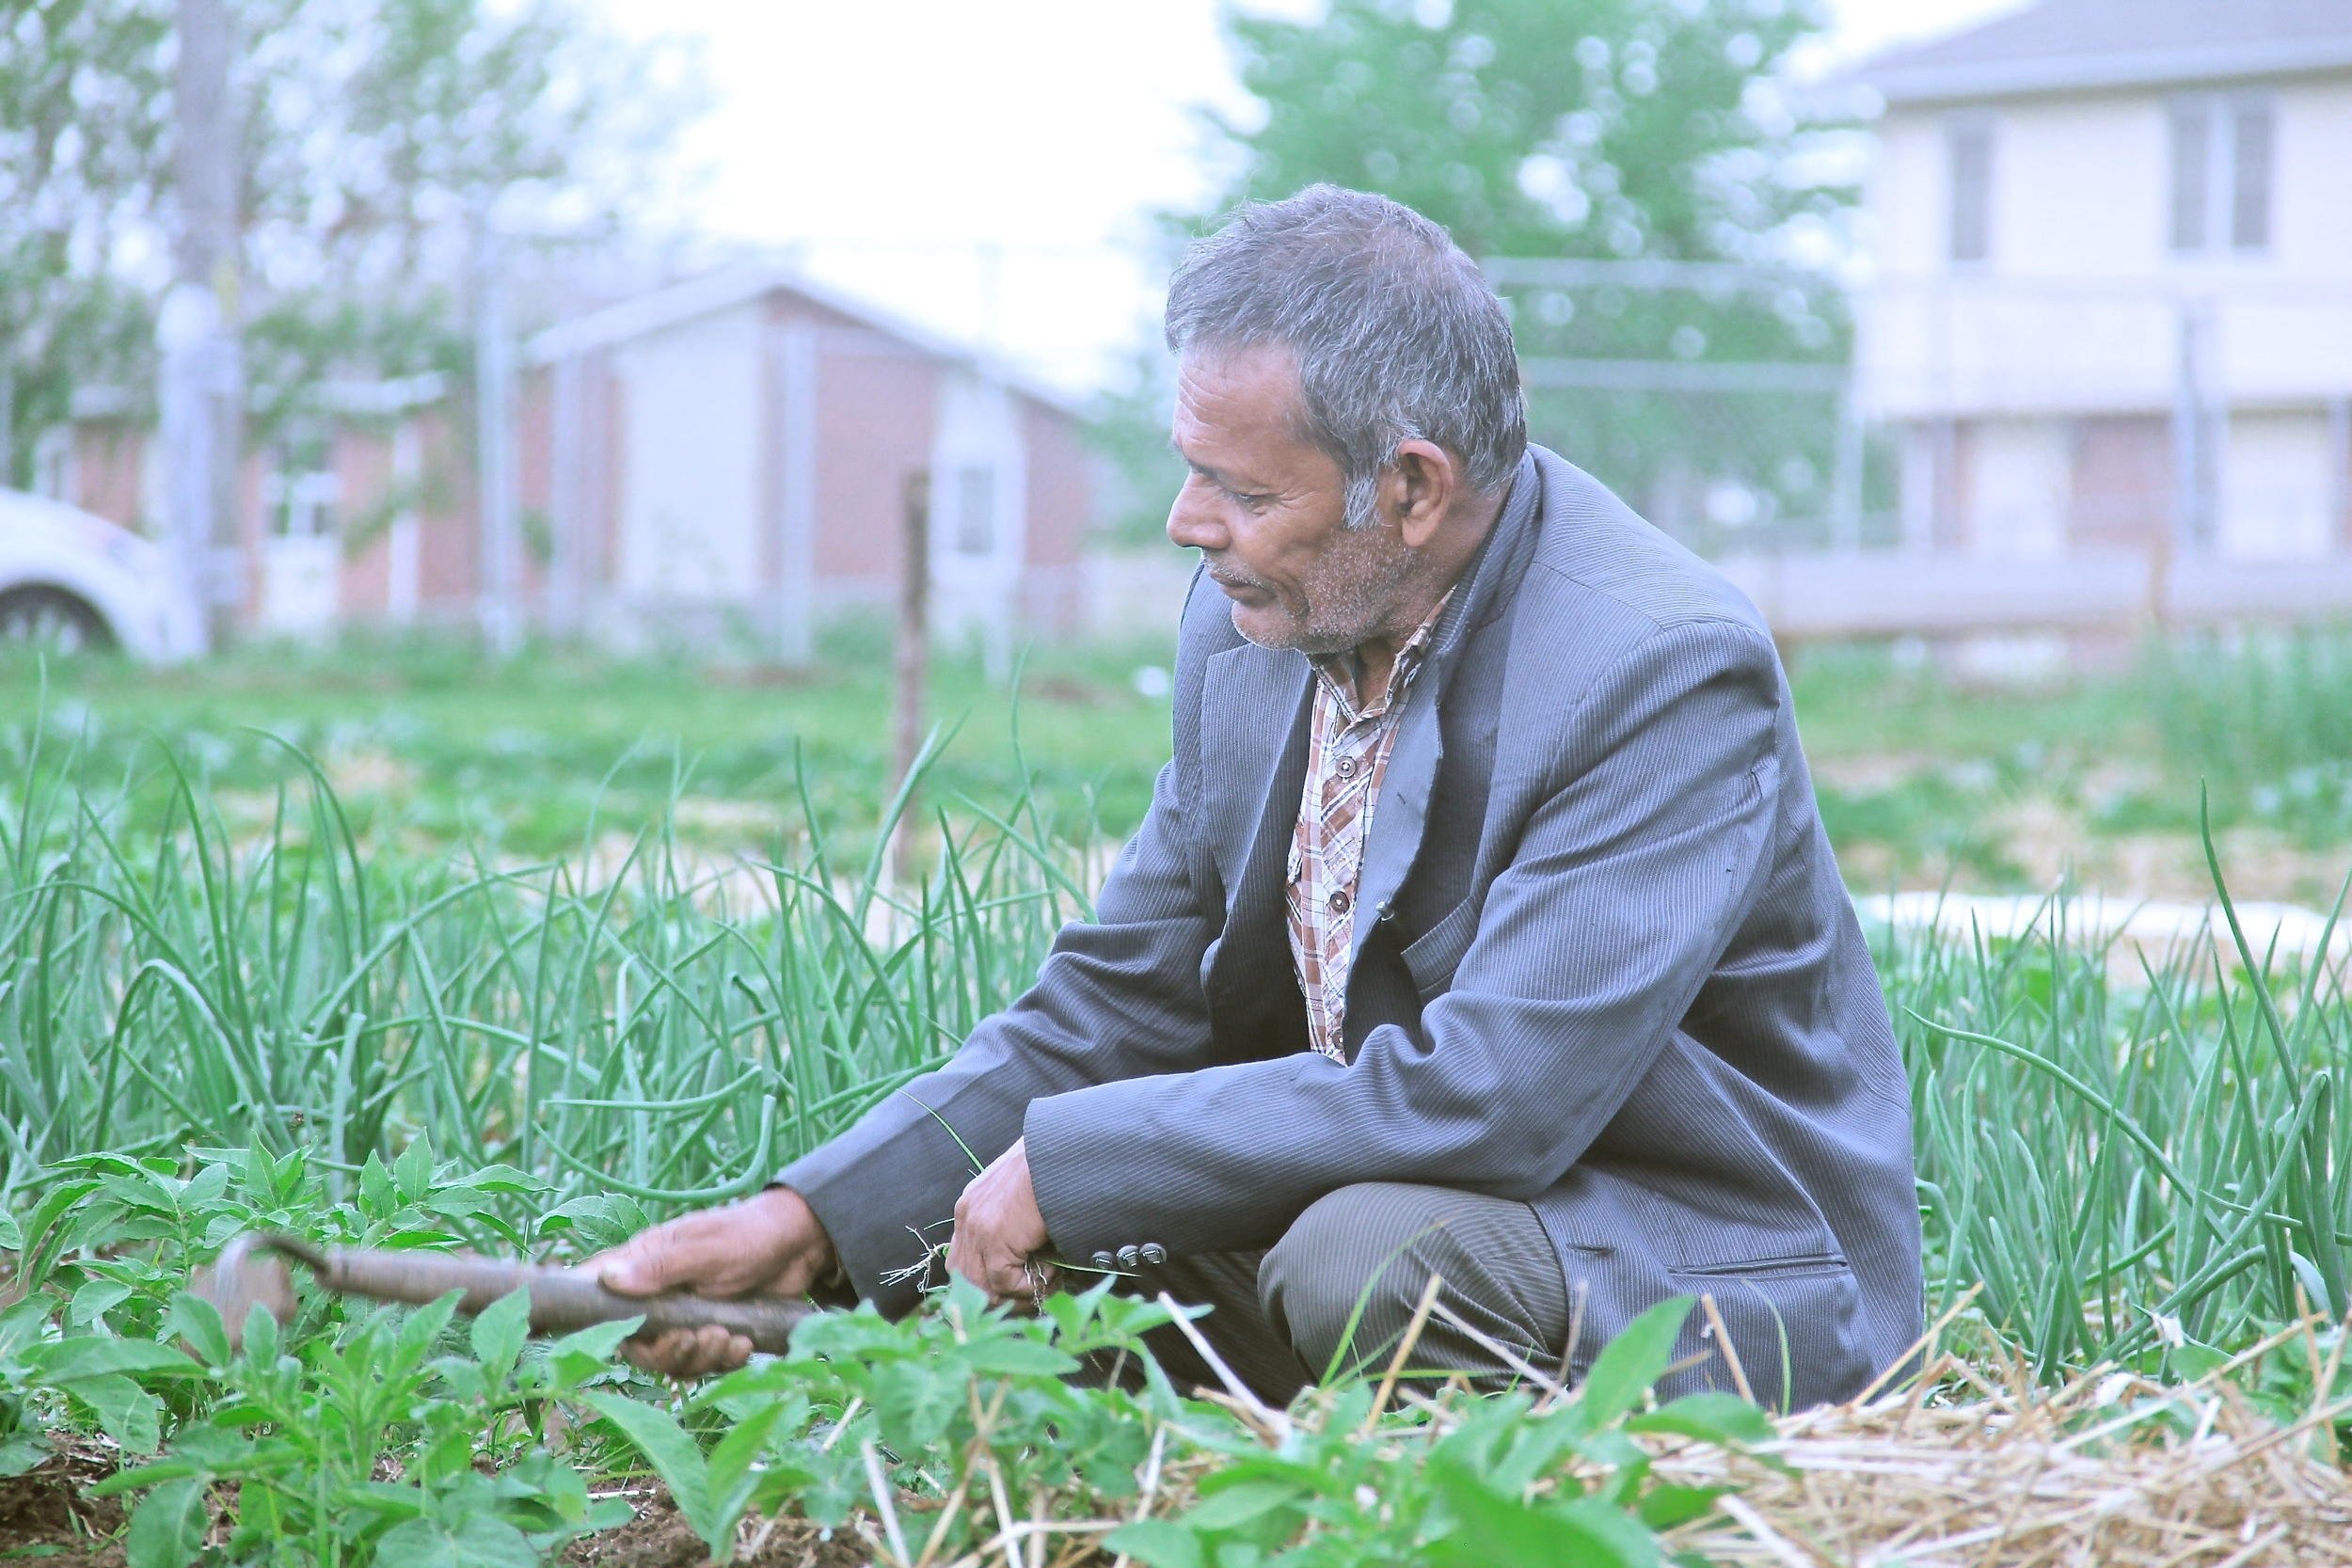 Khadka Regmi from Bhutan, a member and farmer with New Roots for Refugees